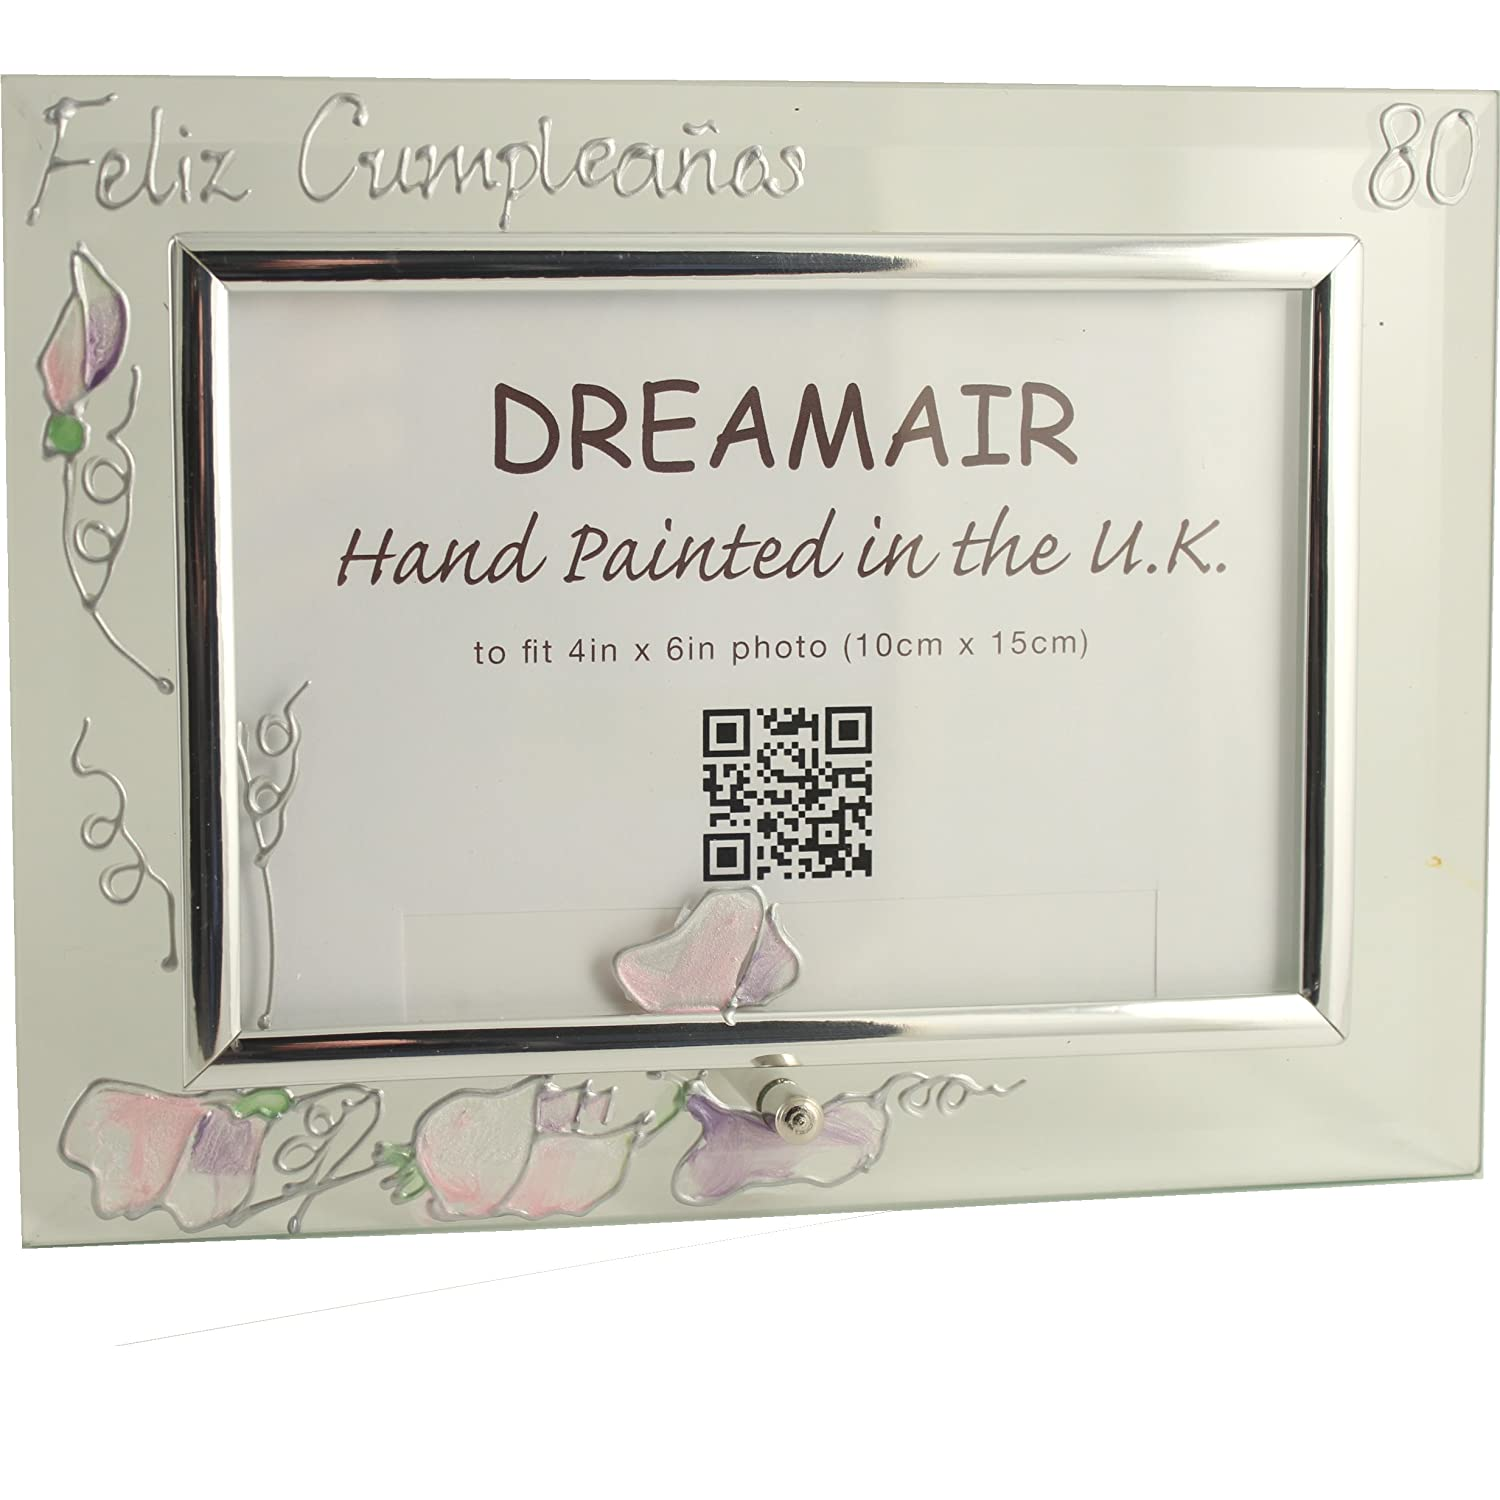 Amazon.com - Dreamair 80 Feliz Cumpleaños Photo Frame Sweet ...